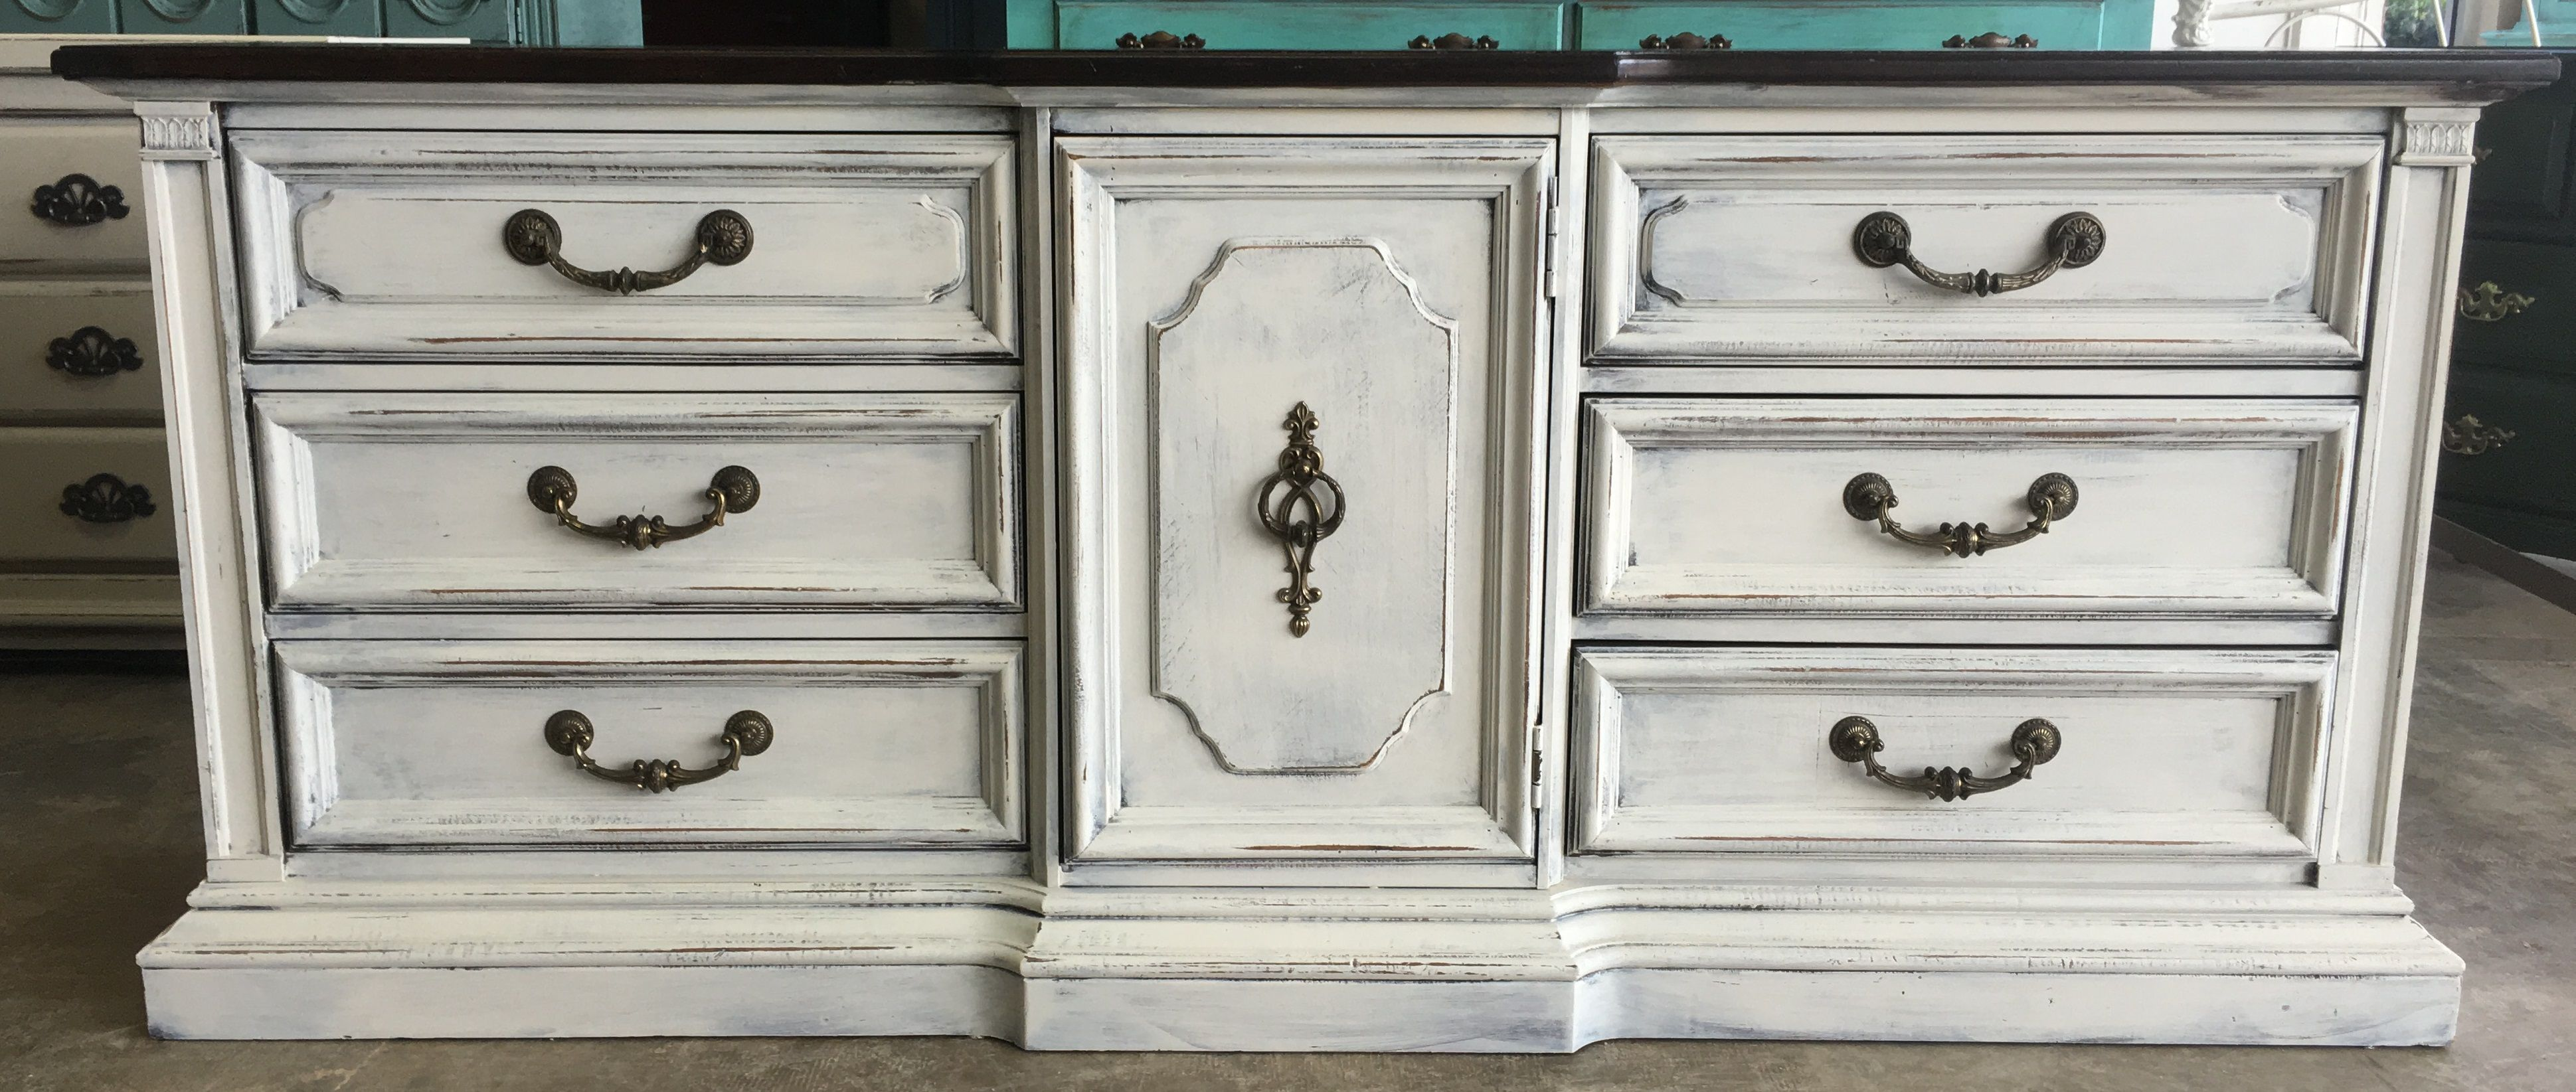 Gosh I Love These Huge Old Dressers Don T You They Are Just So Elegant Looking This One Belongs To Shabby Chic Dresser Shabby Chic Painting Shabby Chic Decor